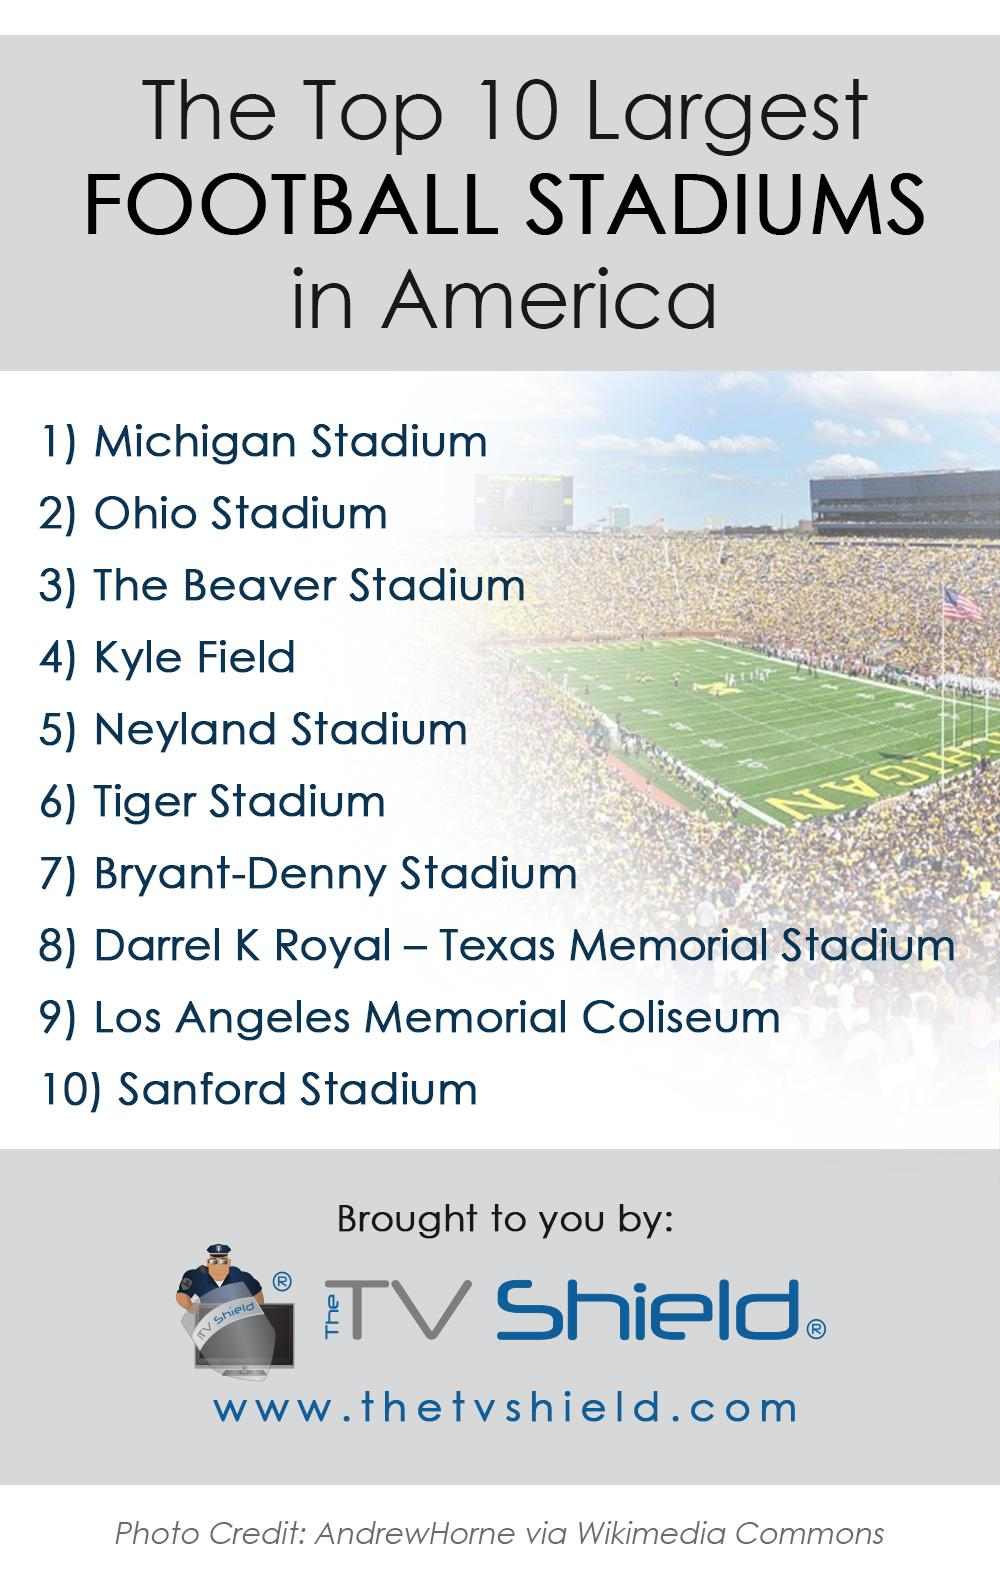 Infographic: The Top 10 Largest Football Stadiums in America